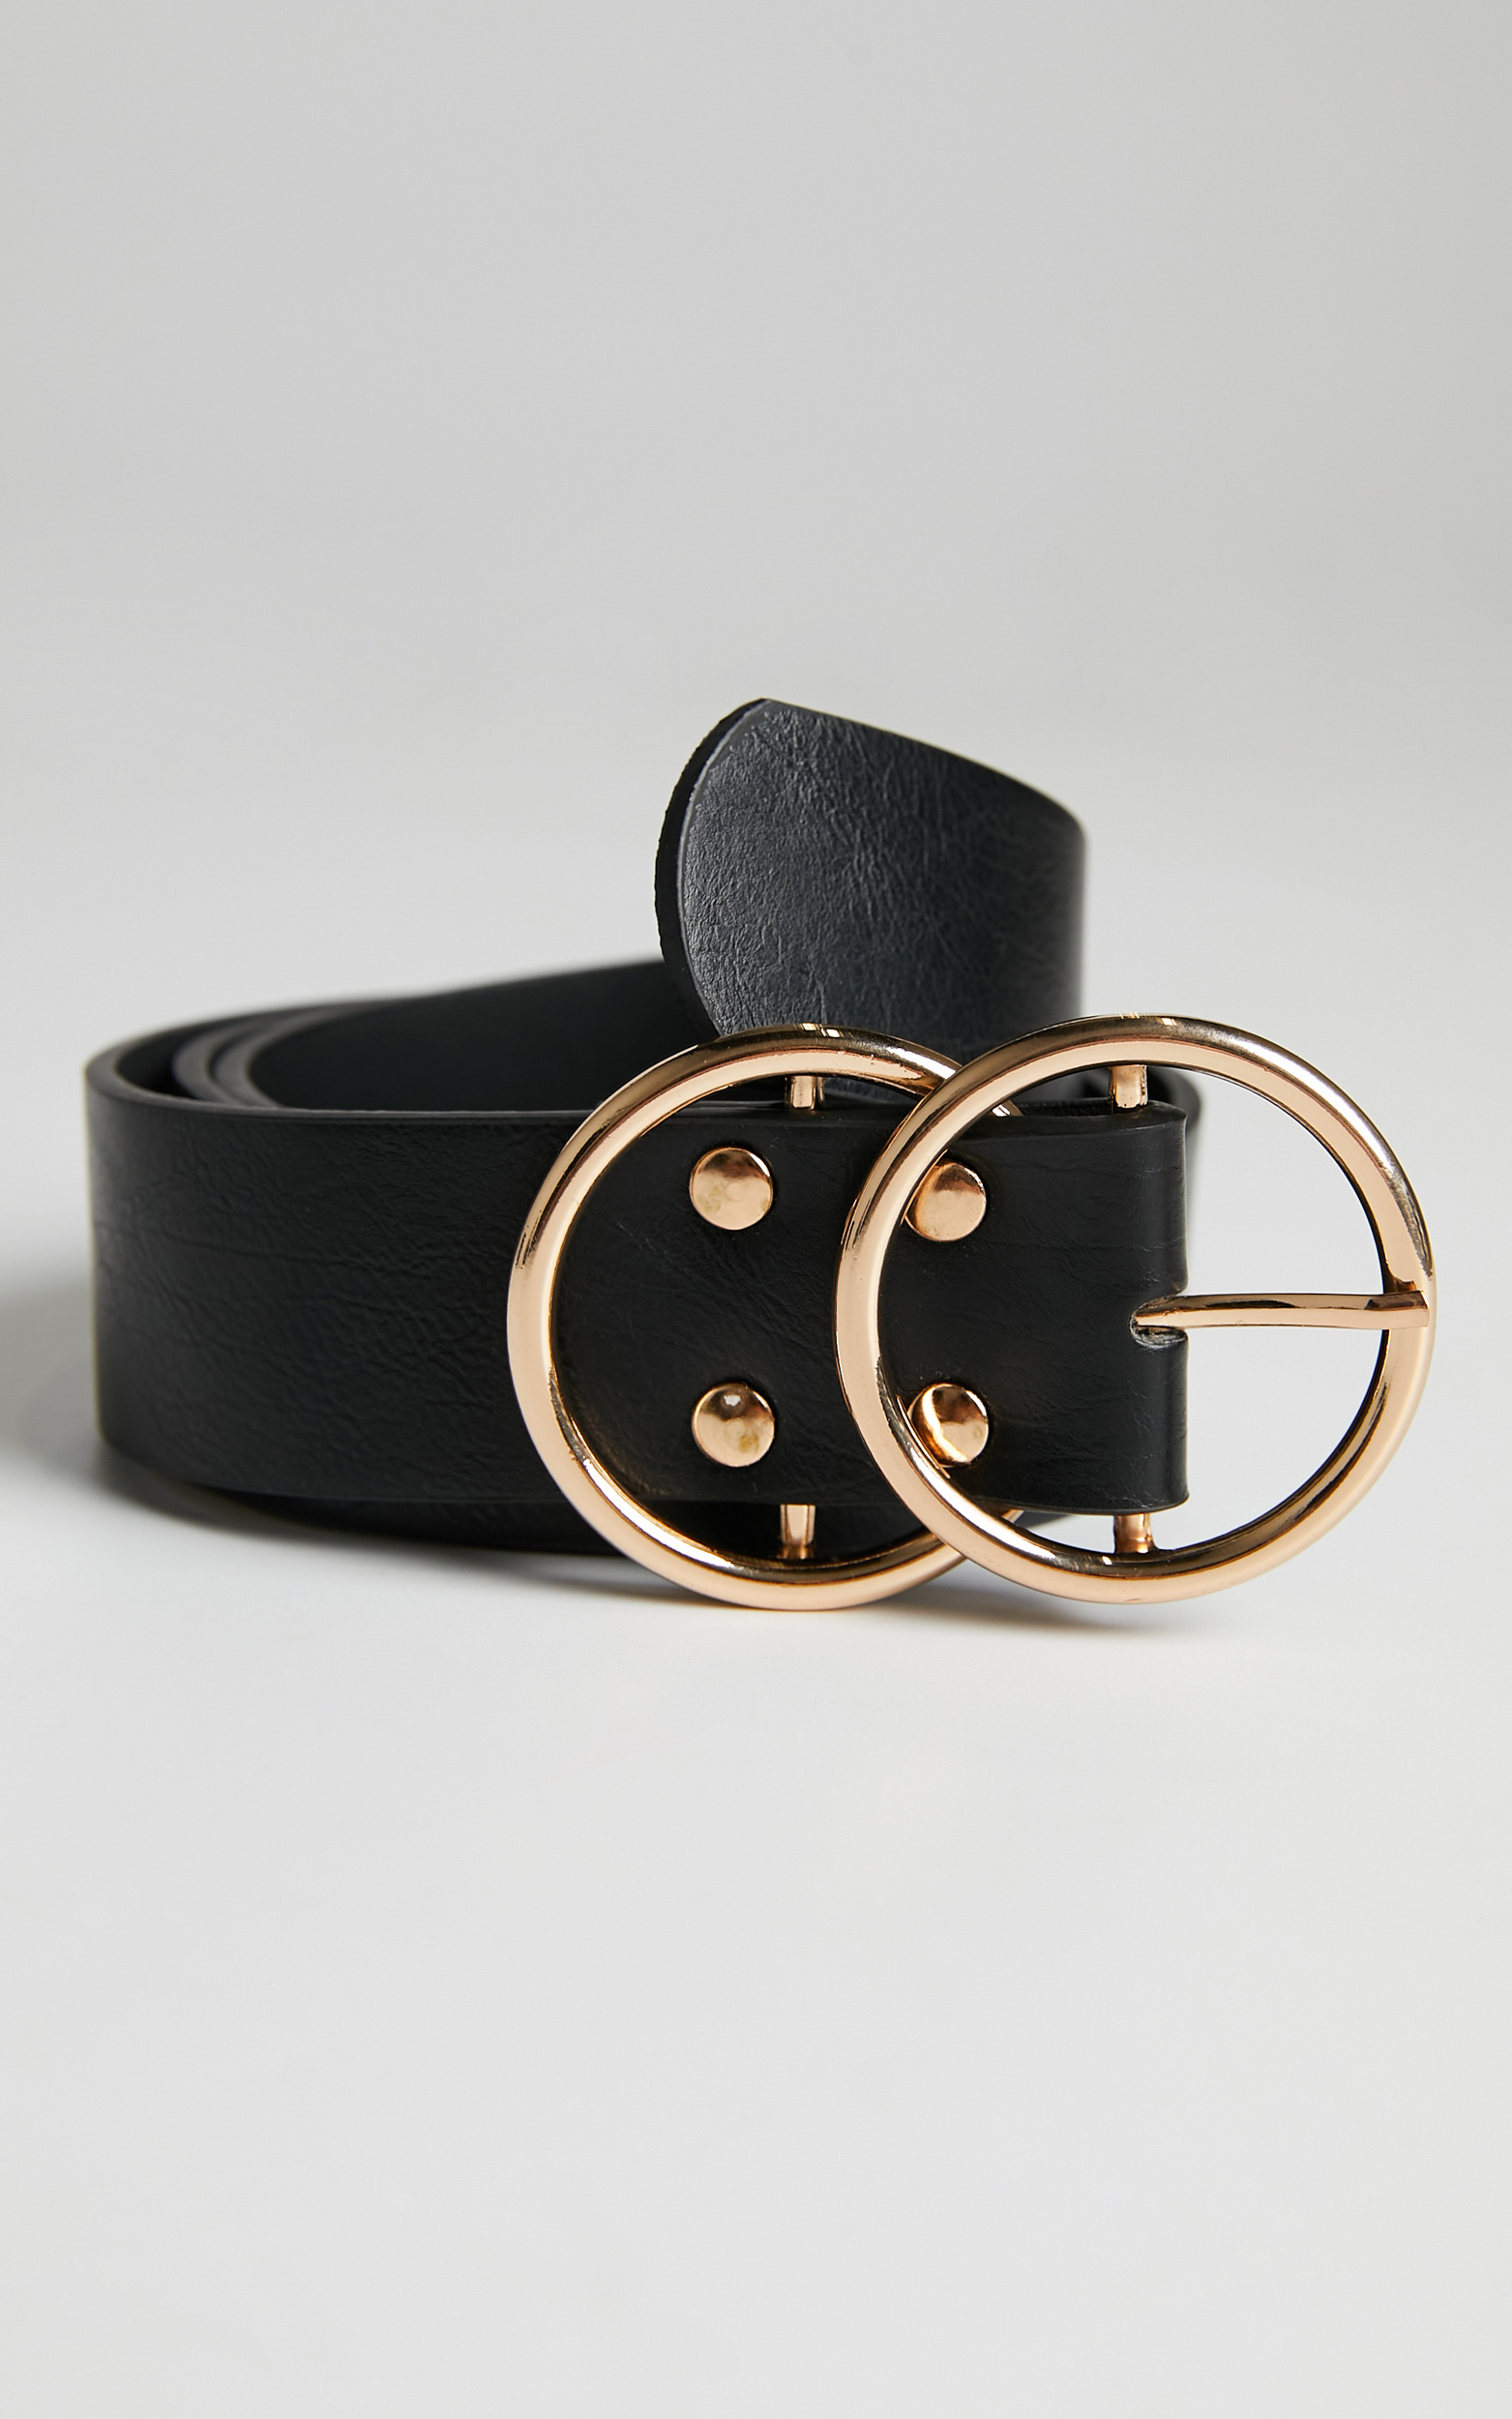 Midnight Charm Belt in Black And Gold Croc, BLK1, hi-res image number null